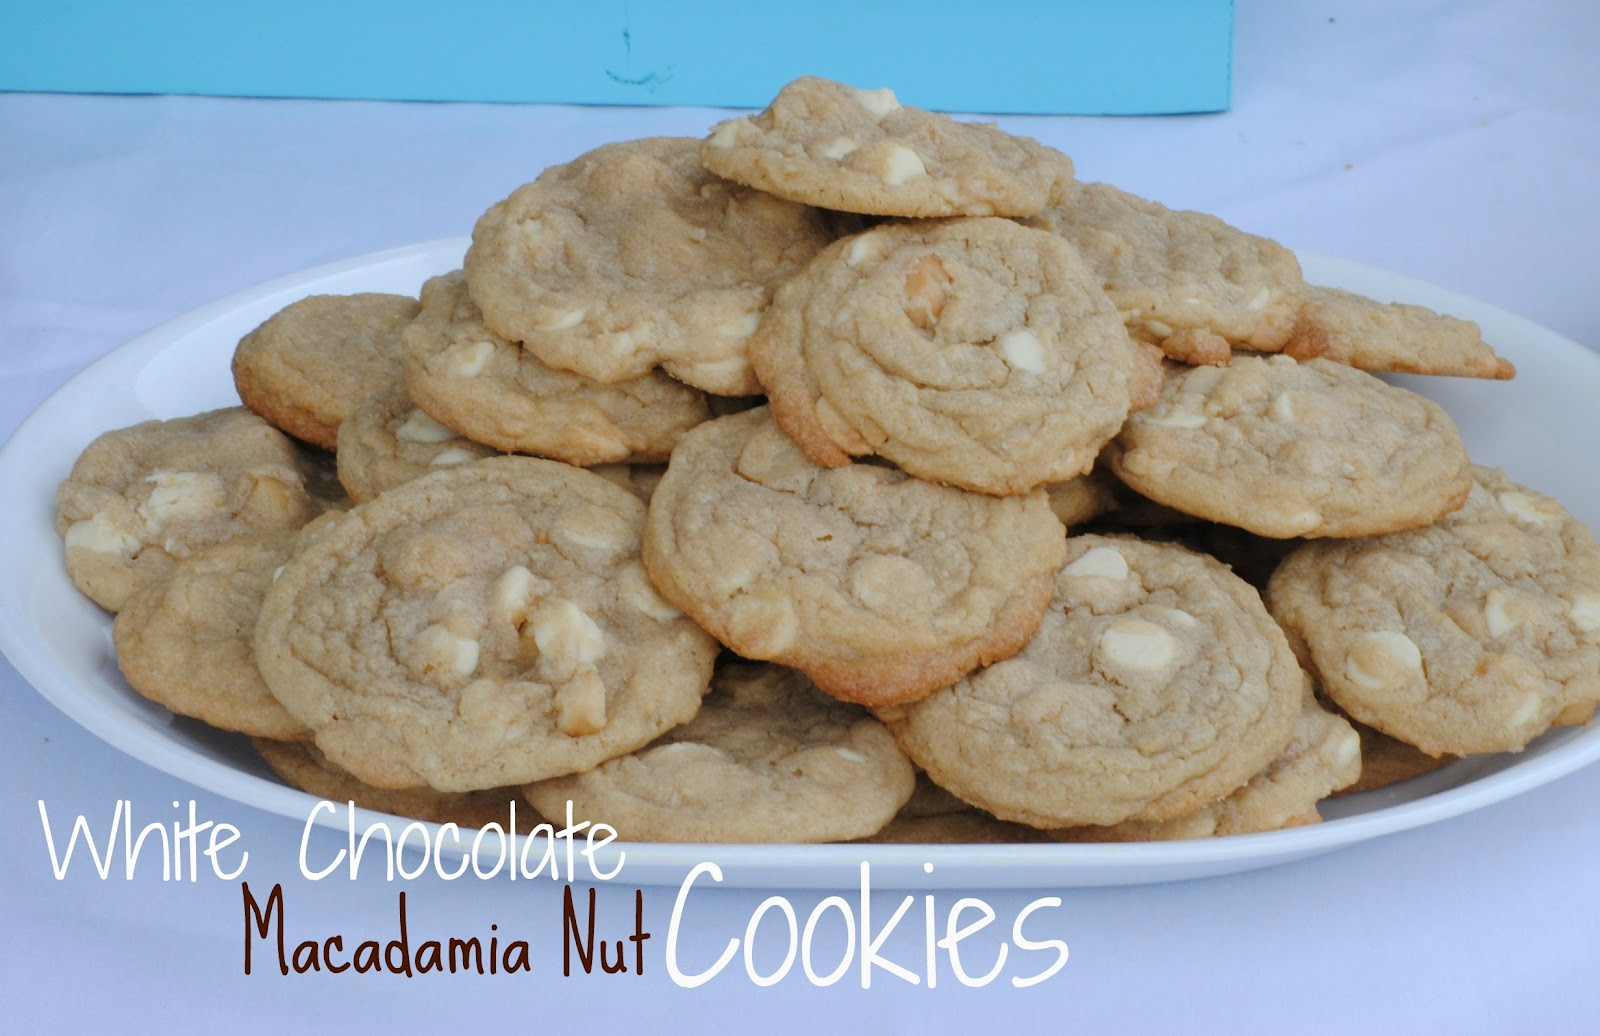 The Farm Girl Recipes: White Chocolate Macadamia Nut Cookies